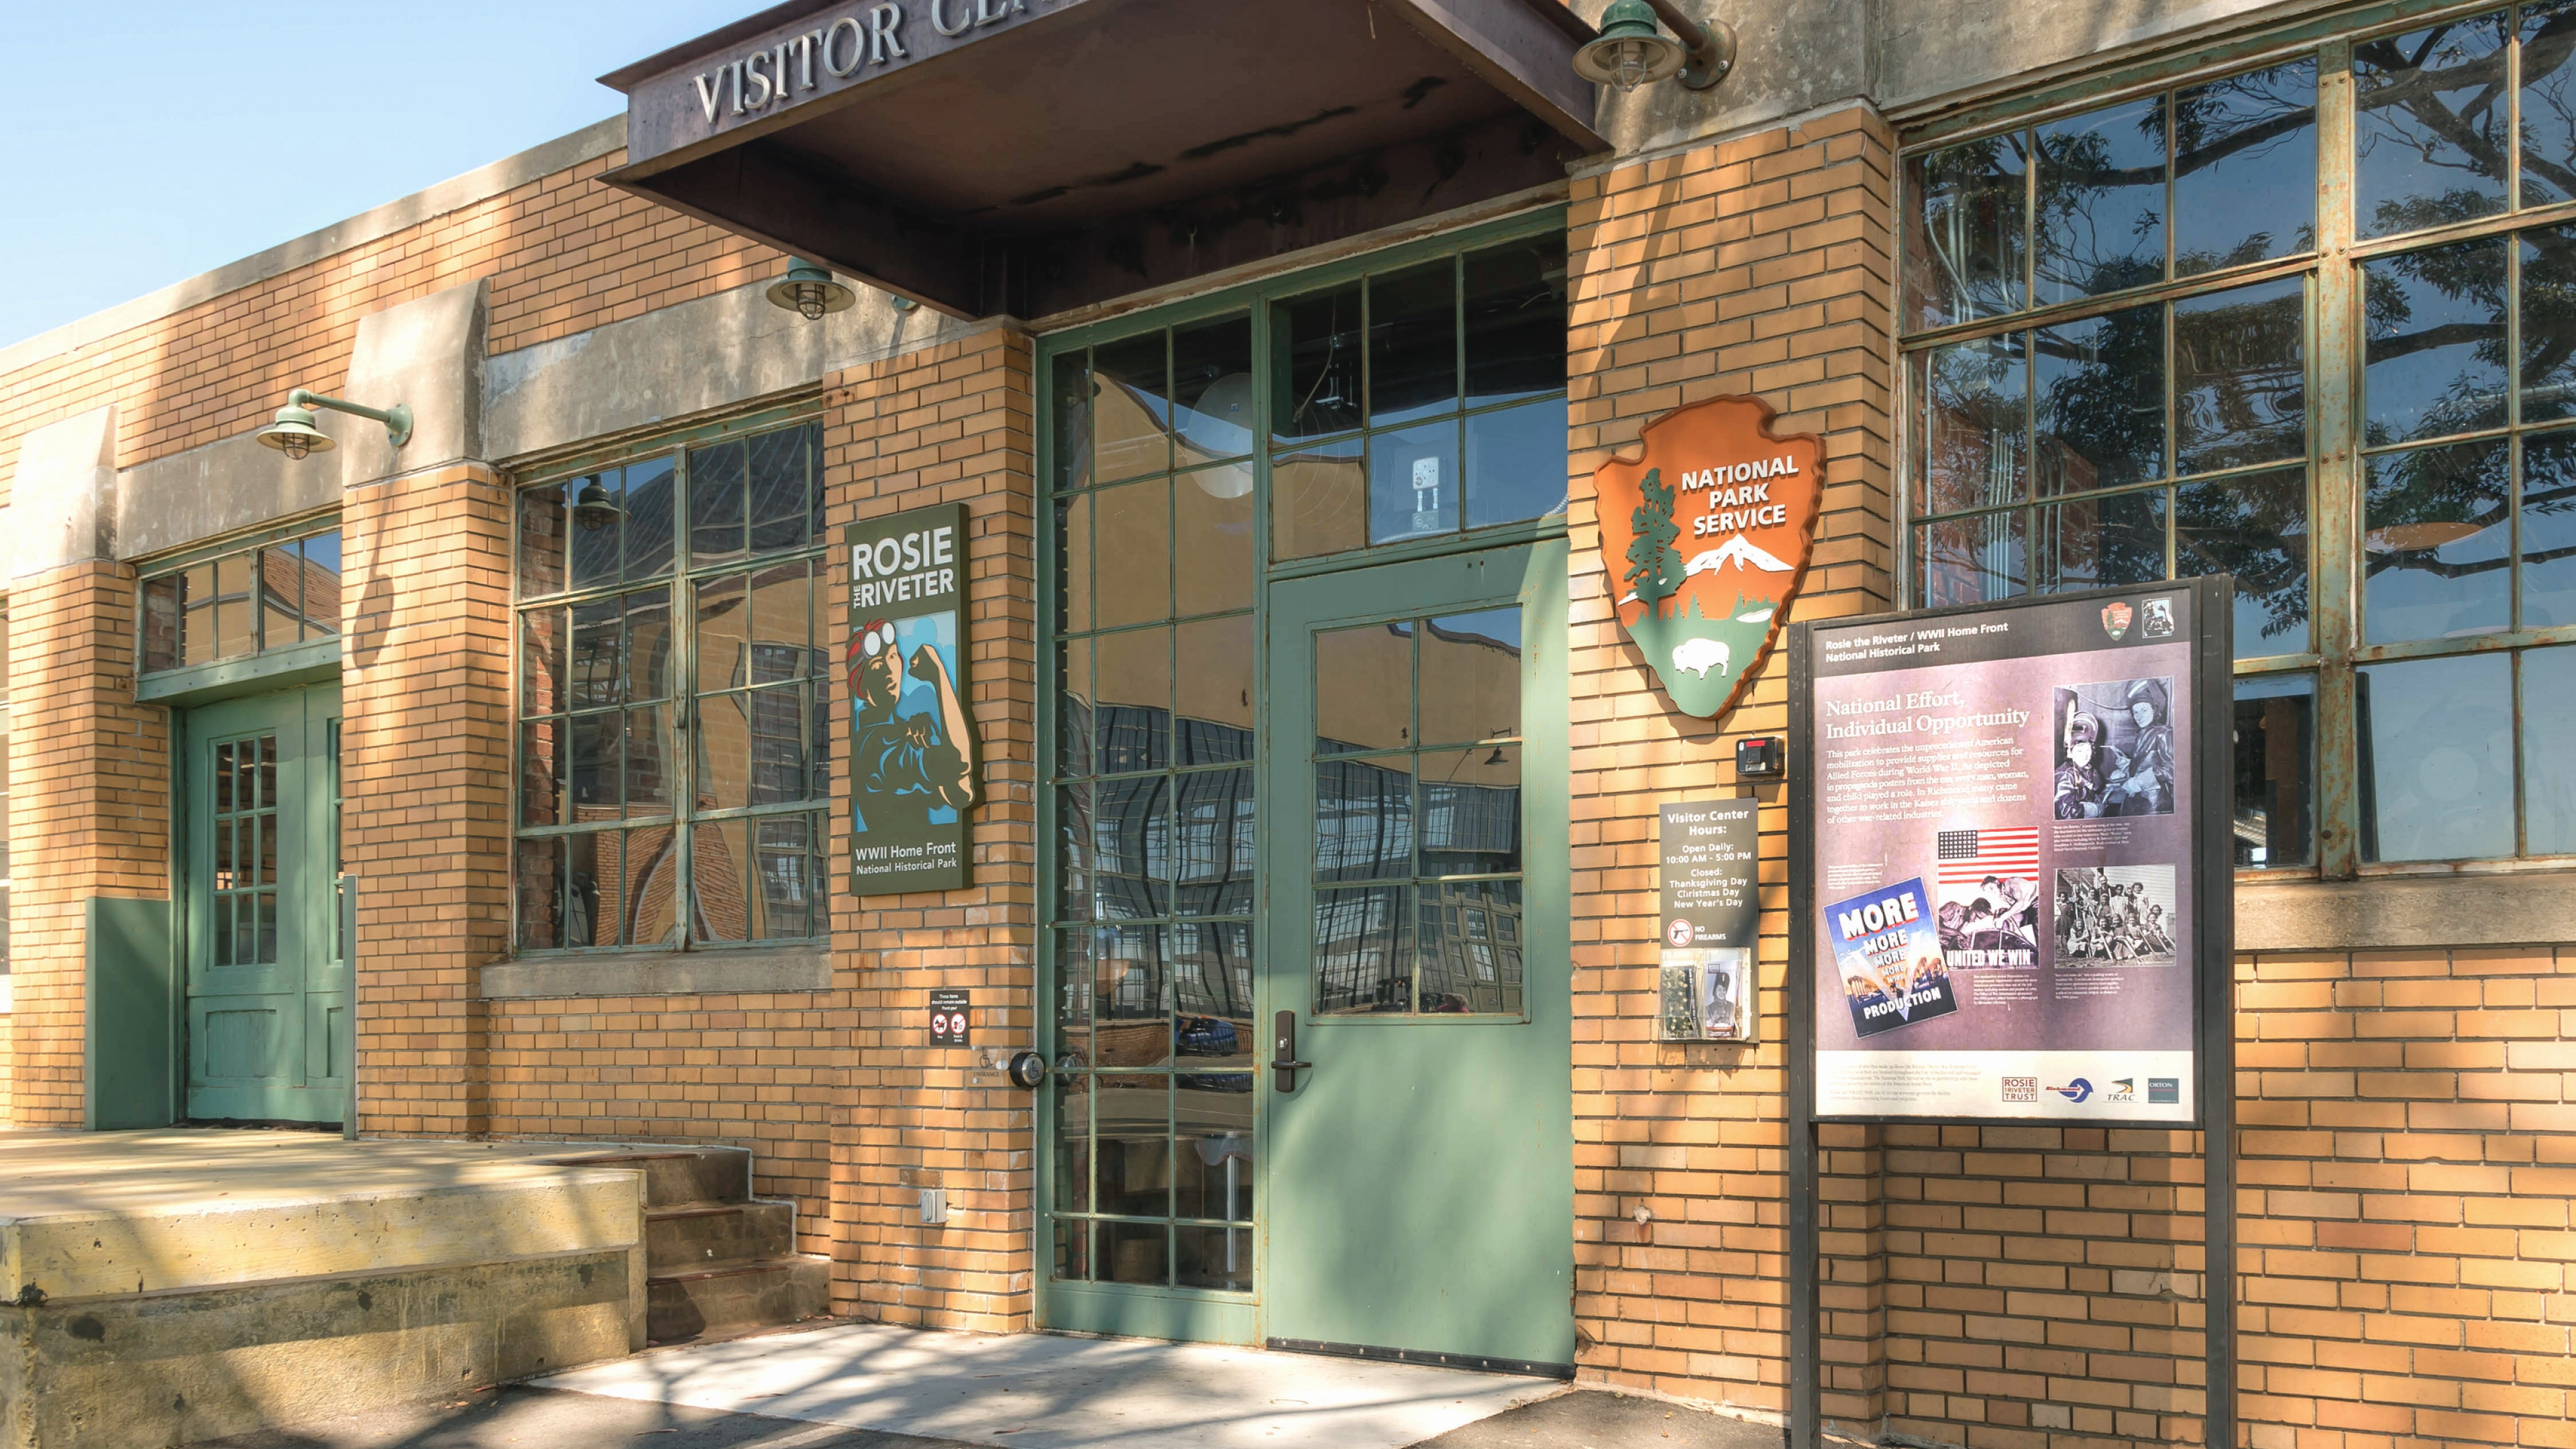 Entrance of the brick building of the visitor center at Rosie the Riveter / WWII Home Front National Historical Park